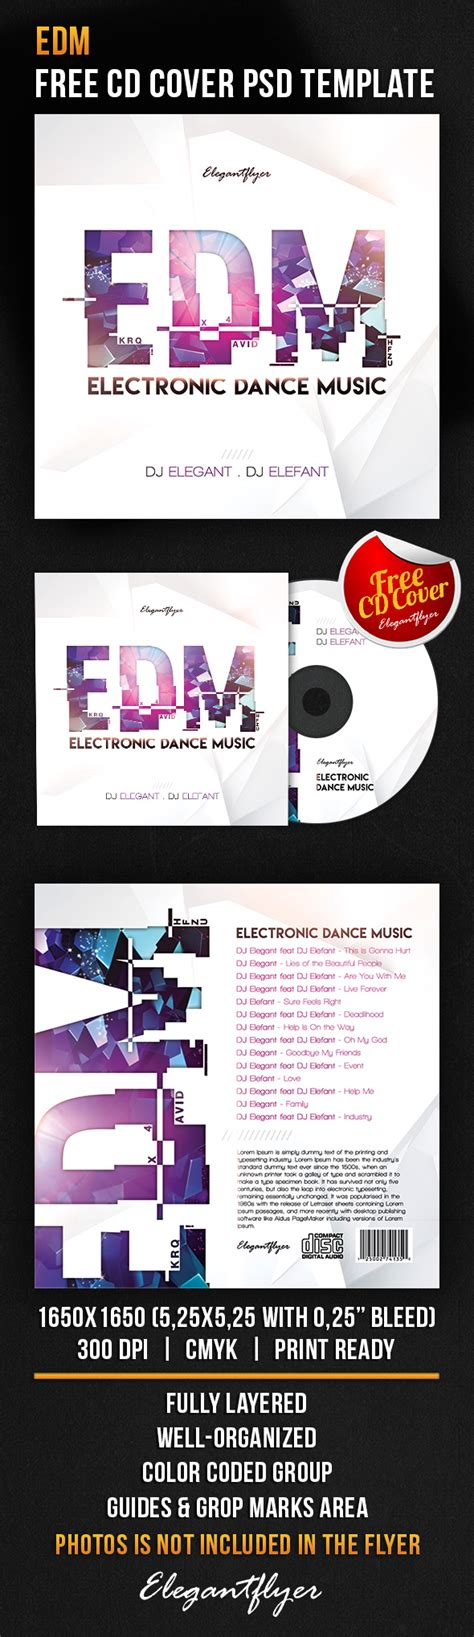 html edm template free edm free cd cover psd template flyer template psd